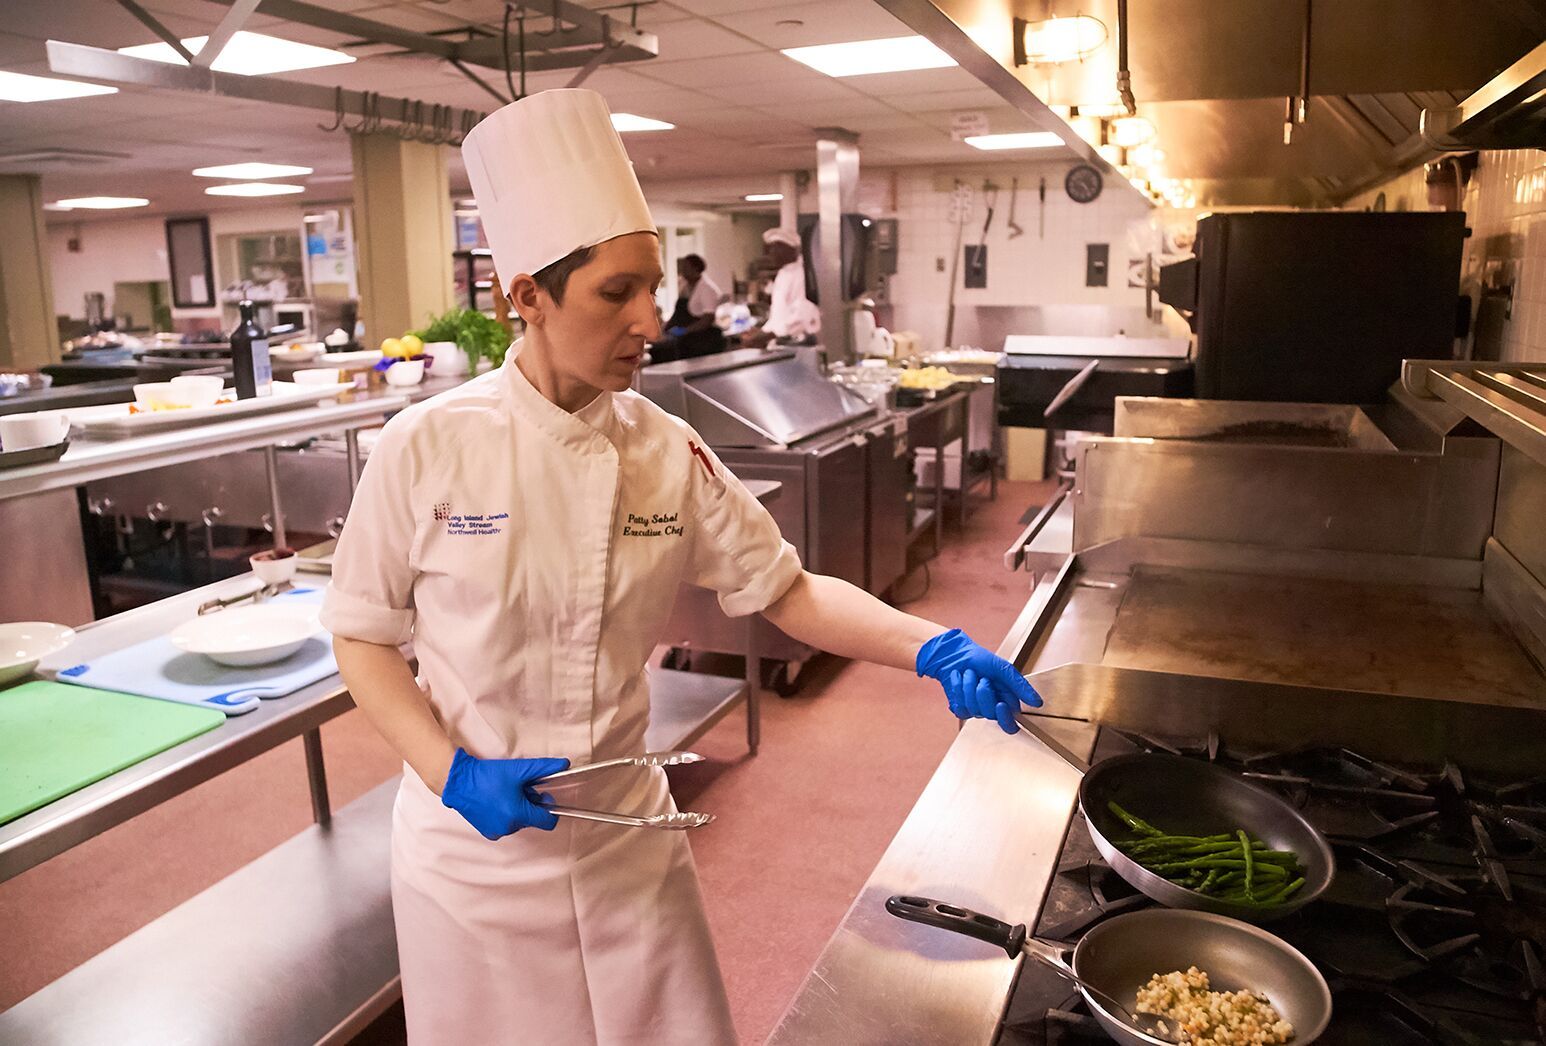 Chef prepares food on stove in hospital kitchen.